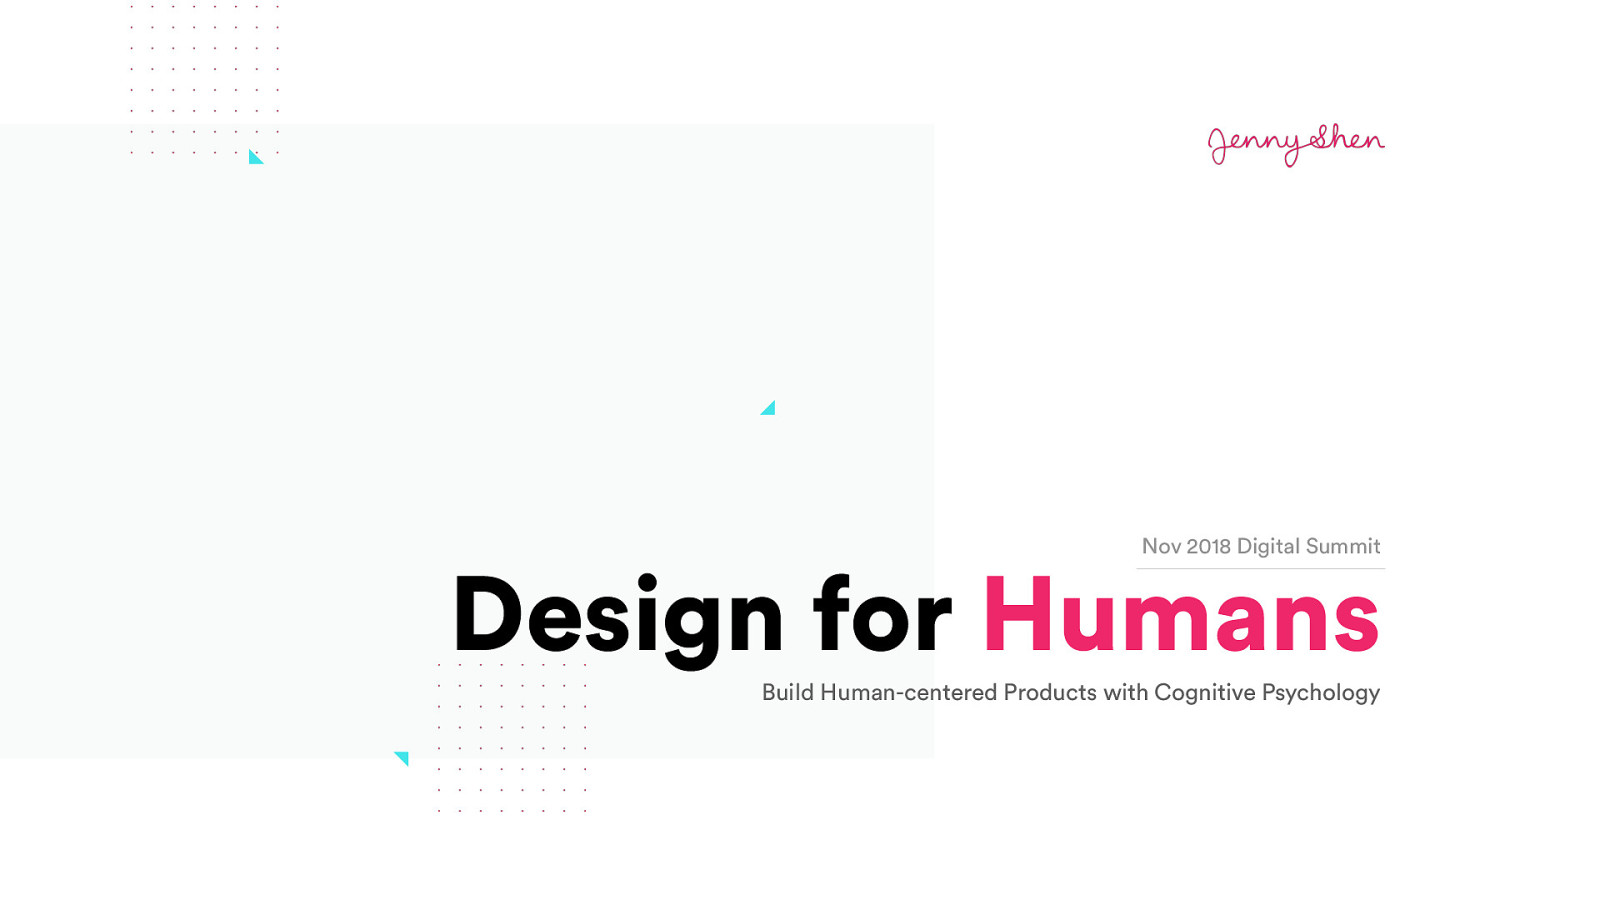 Design for Humans: Build Human-Centered Products with Cognitive Psychology